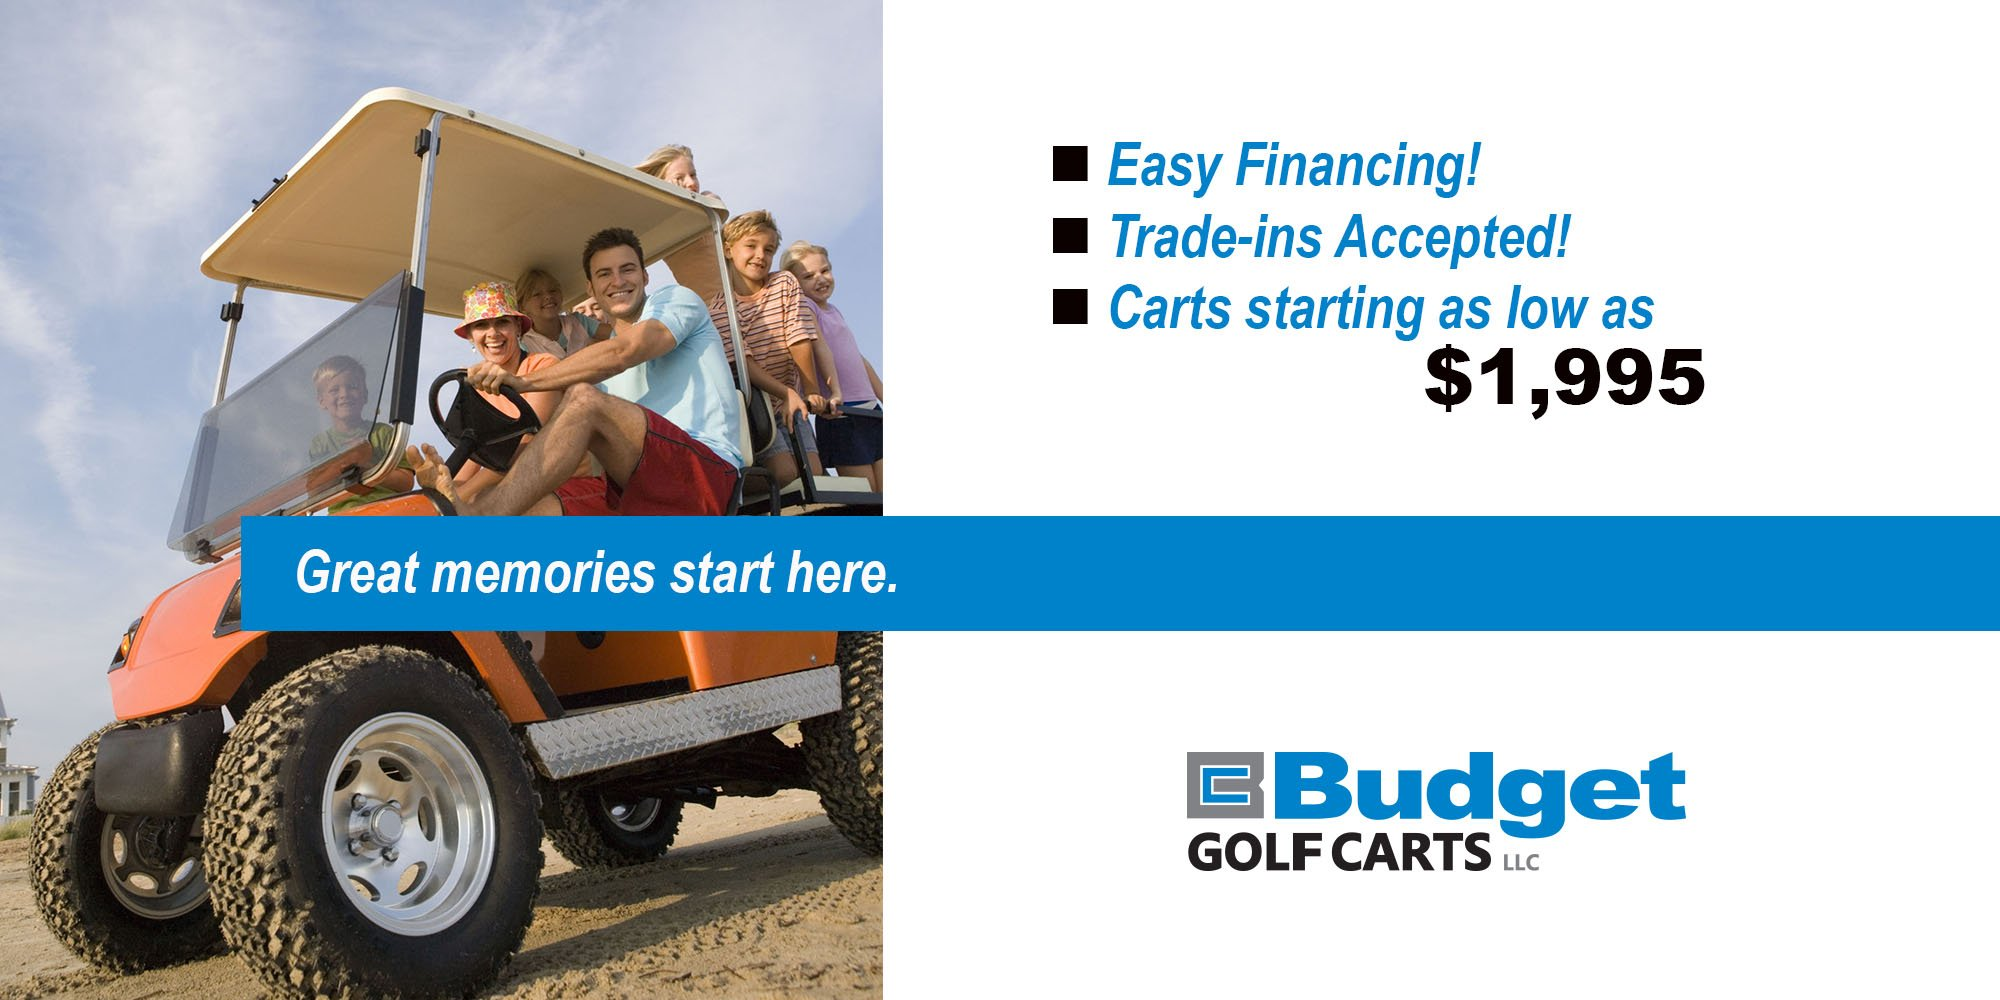 Budget-Golf-Carts-Club-Car-Homepage3-rev